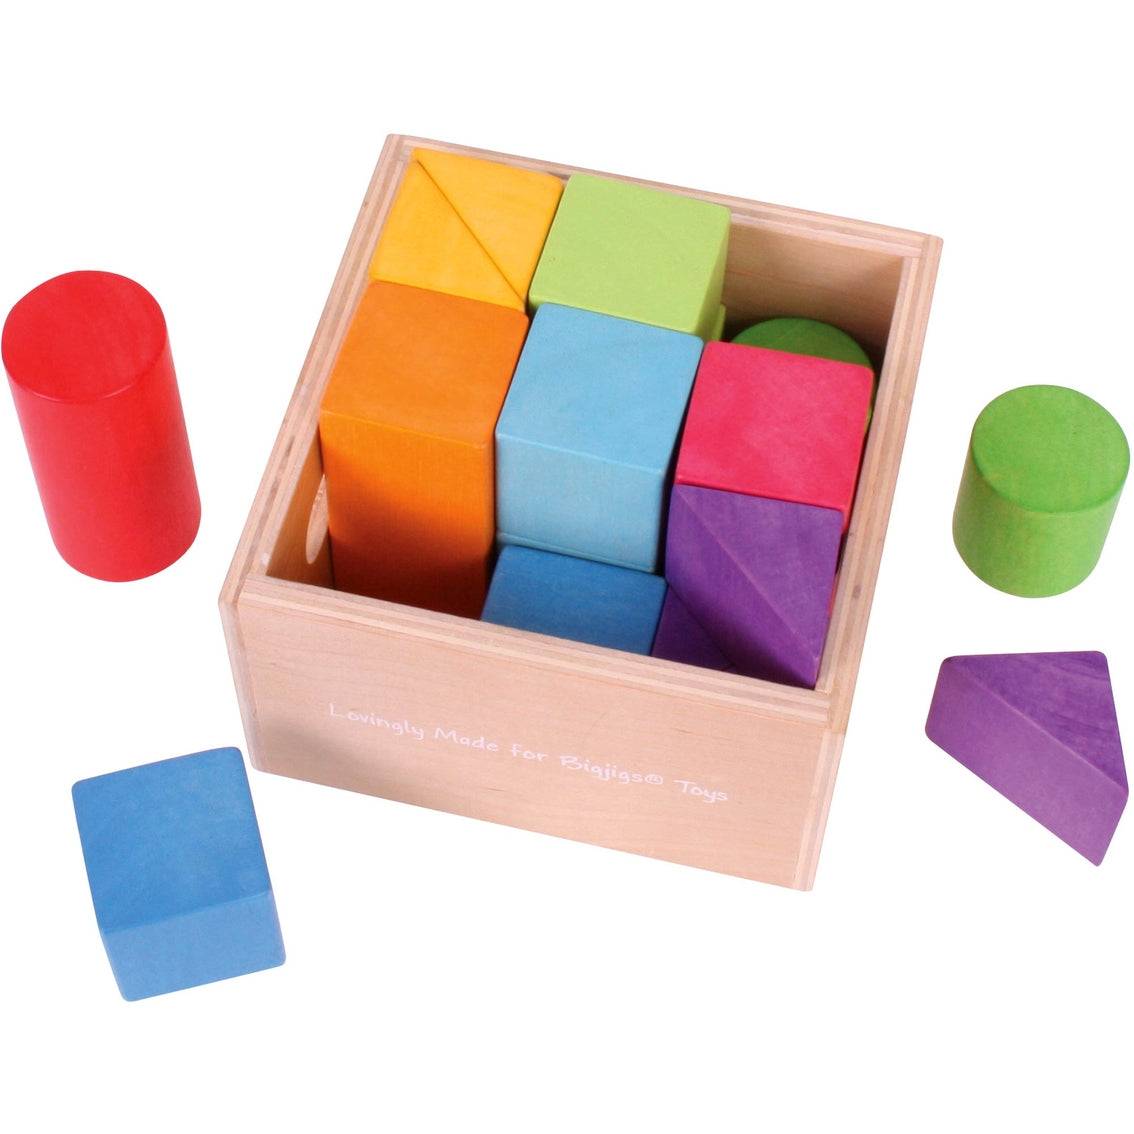 Bigjigs Wooden Building Blocks 17 pieces